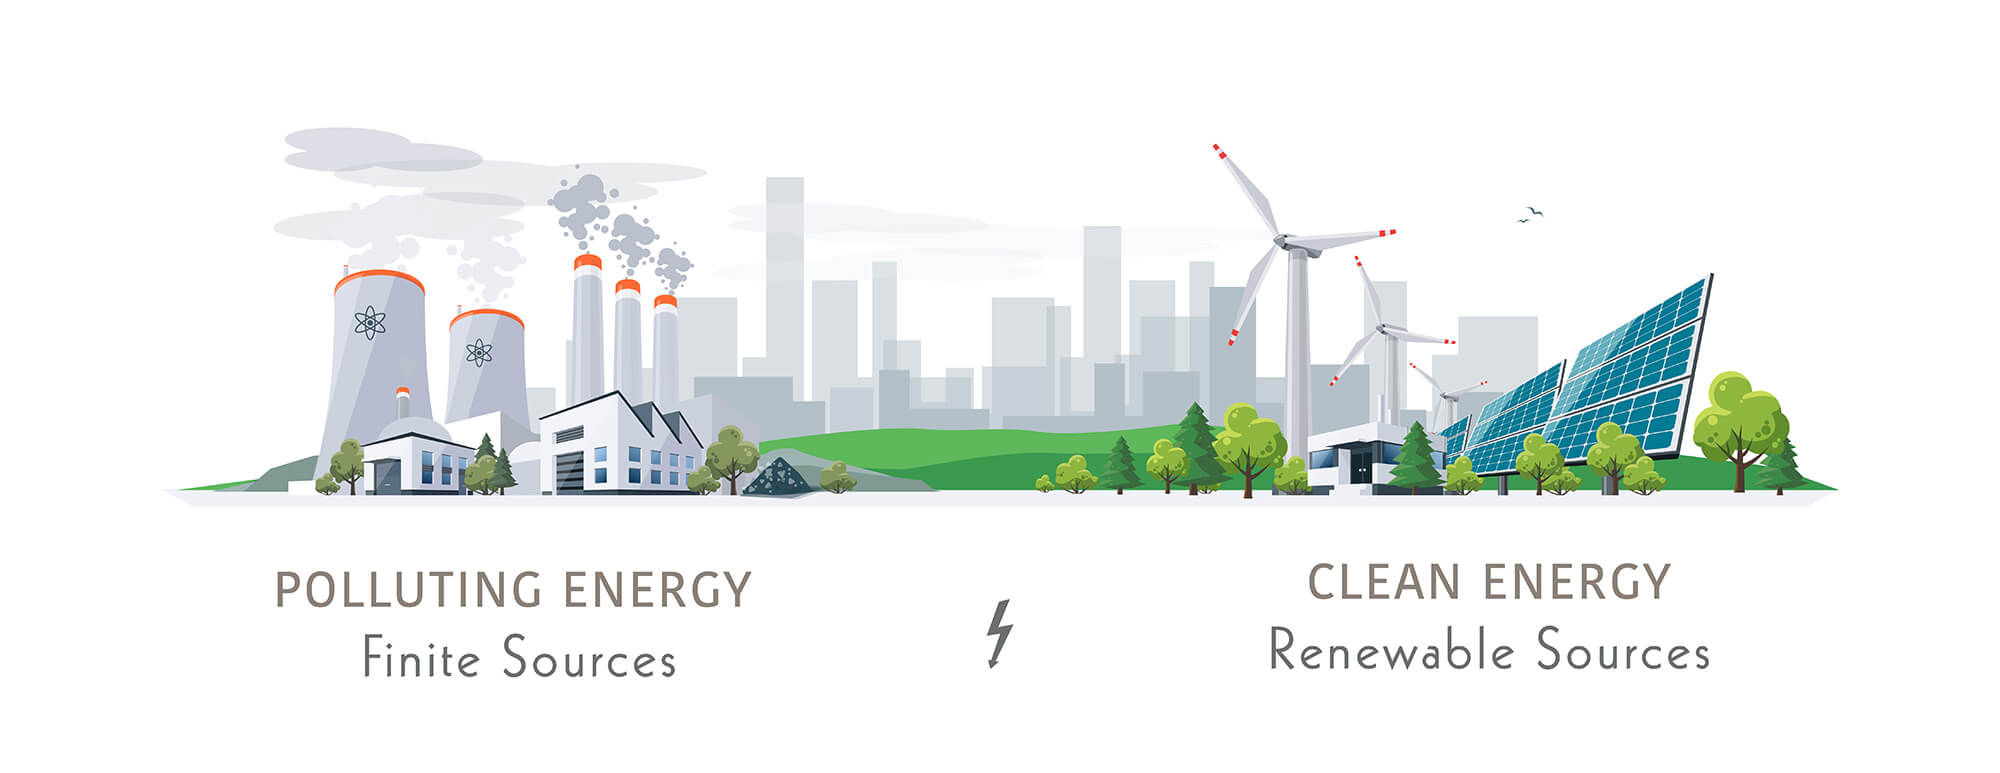 Illustration of finite versus renewable sources of energy